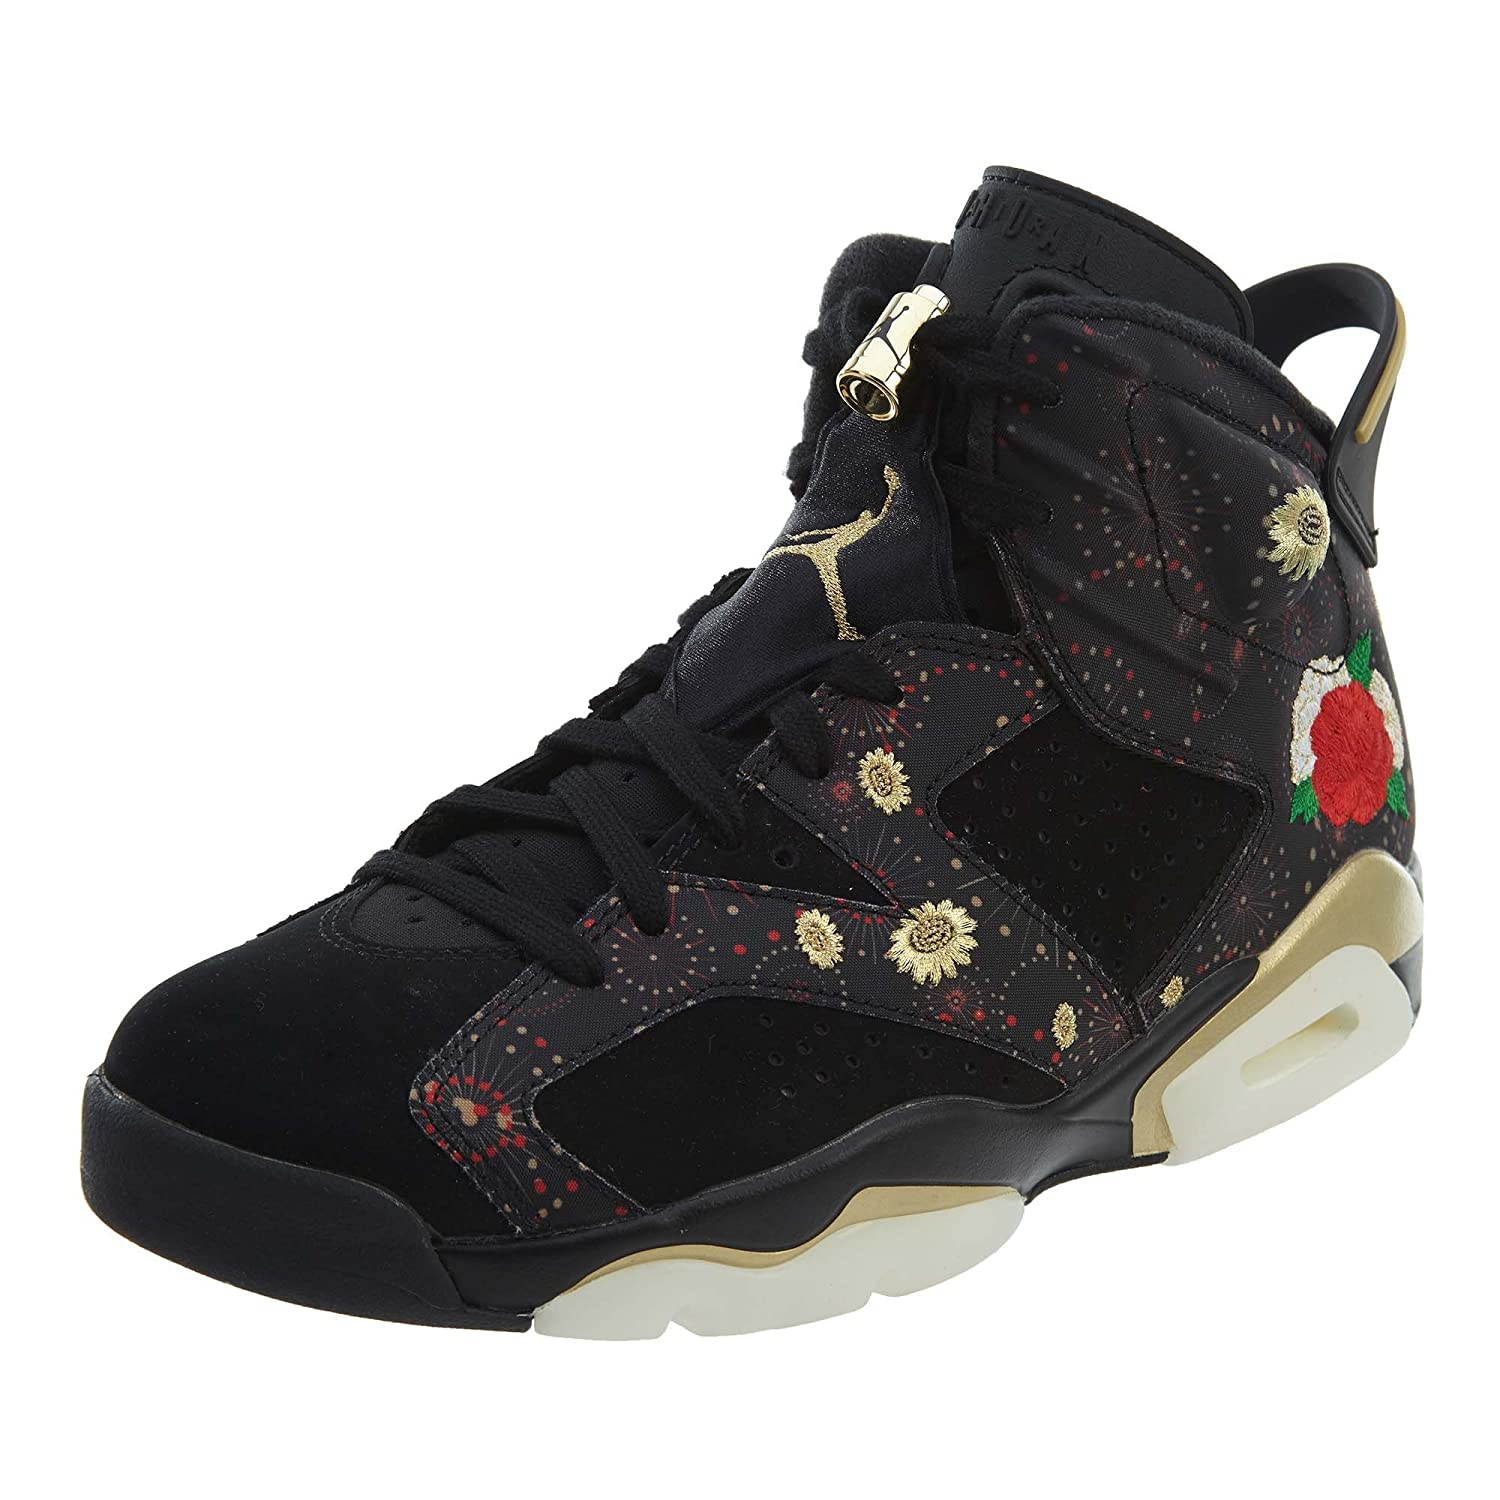 AIR JORDAN - エアジョーダン - AIR JORDAN 6 RETRO CNY 'CHINESE NEW YEAR' - AA2492-021 - SIZE - 9 (メンズ) B078VLKJRG